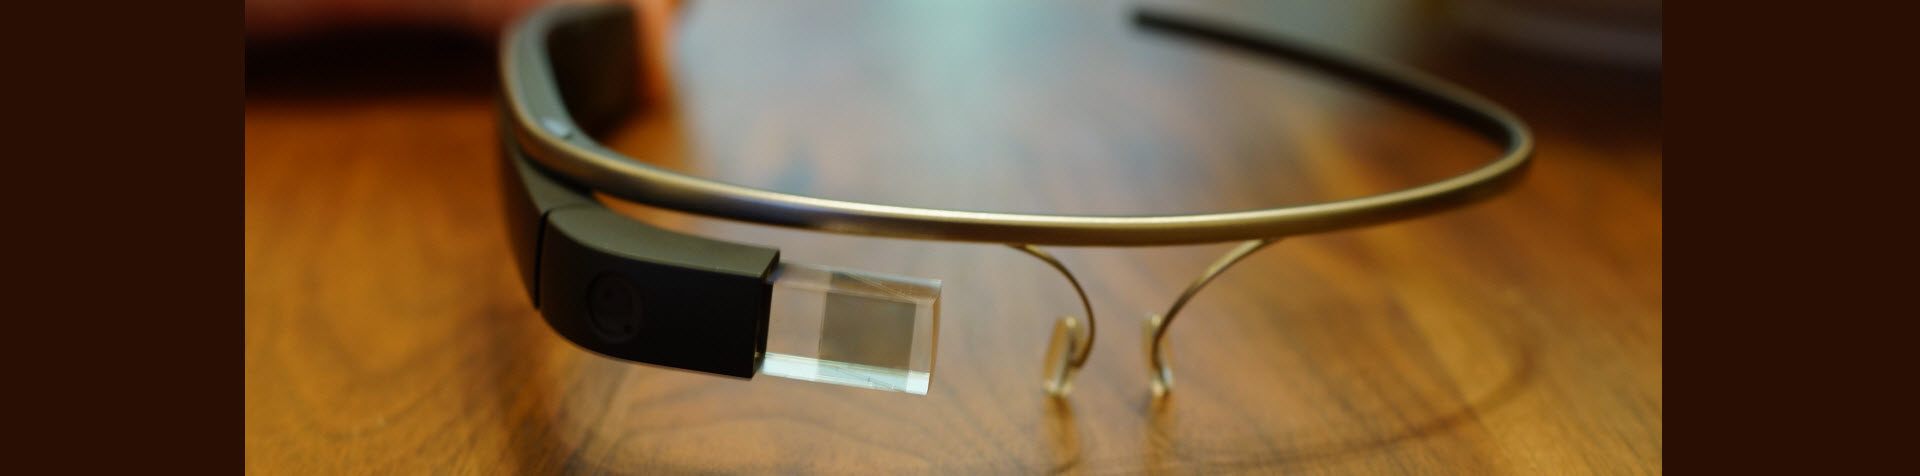 Google Glass in Warehouse Automation image